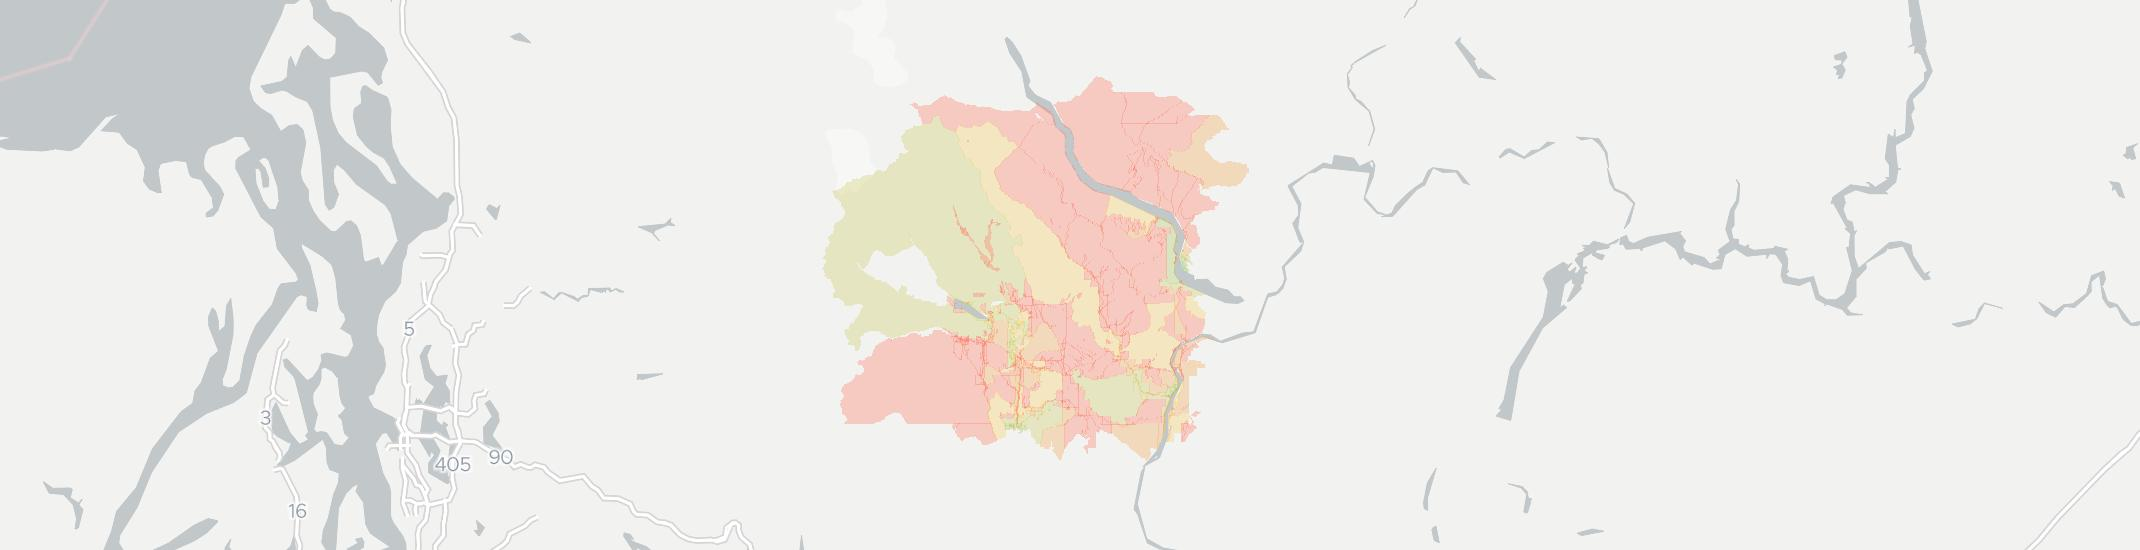 Entiat Internet Competition Map. Click for interactive map.